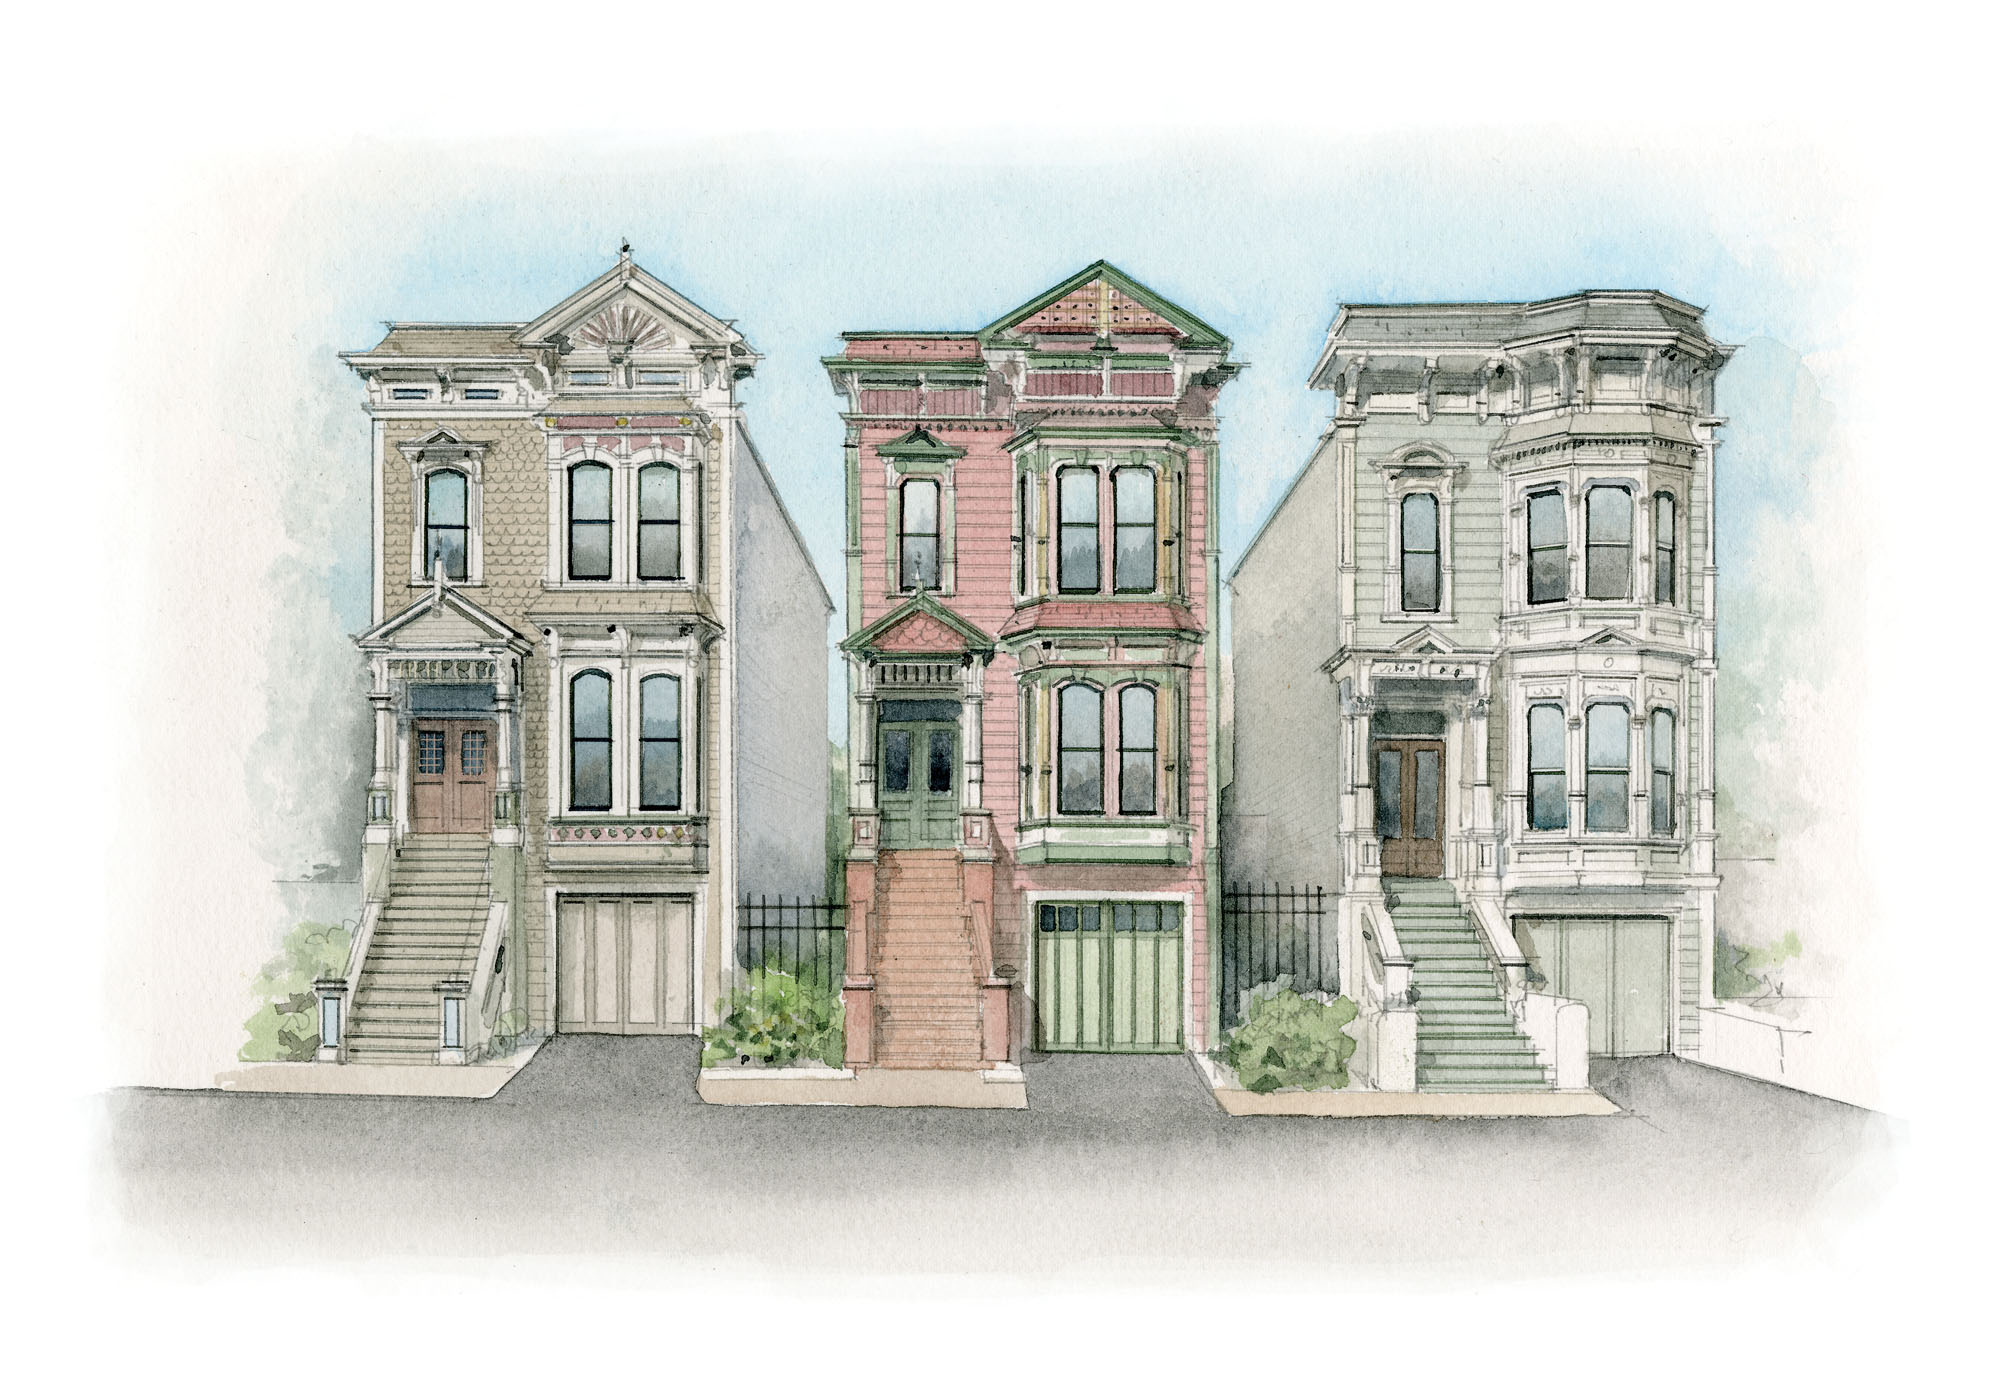 WOOD-FRAME ROW HOUSES, 1870s